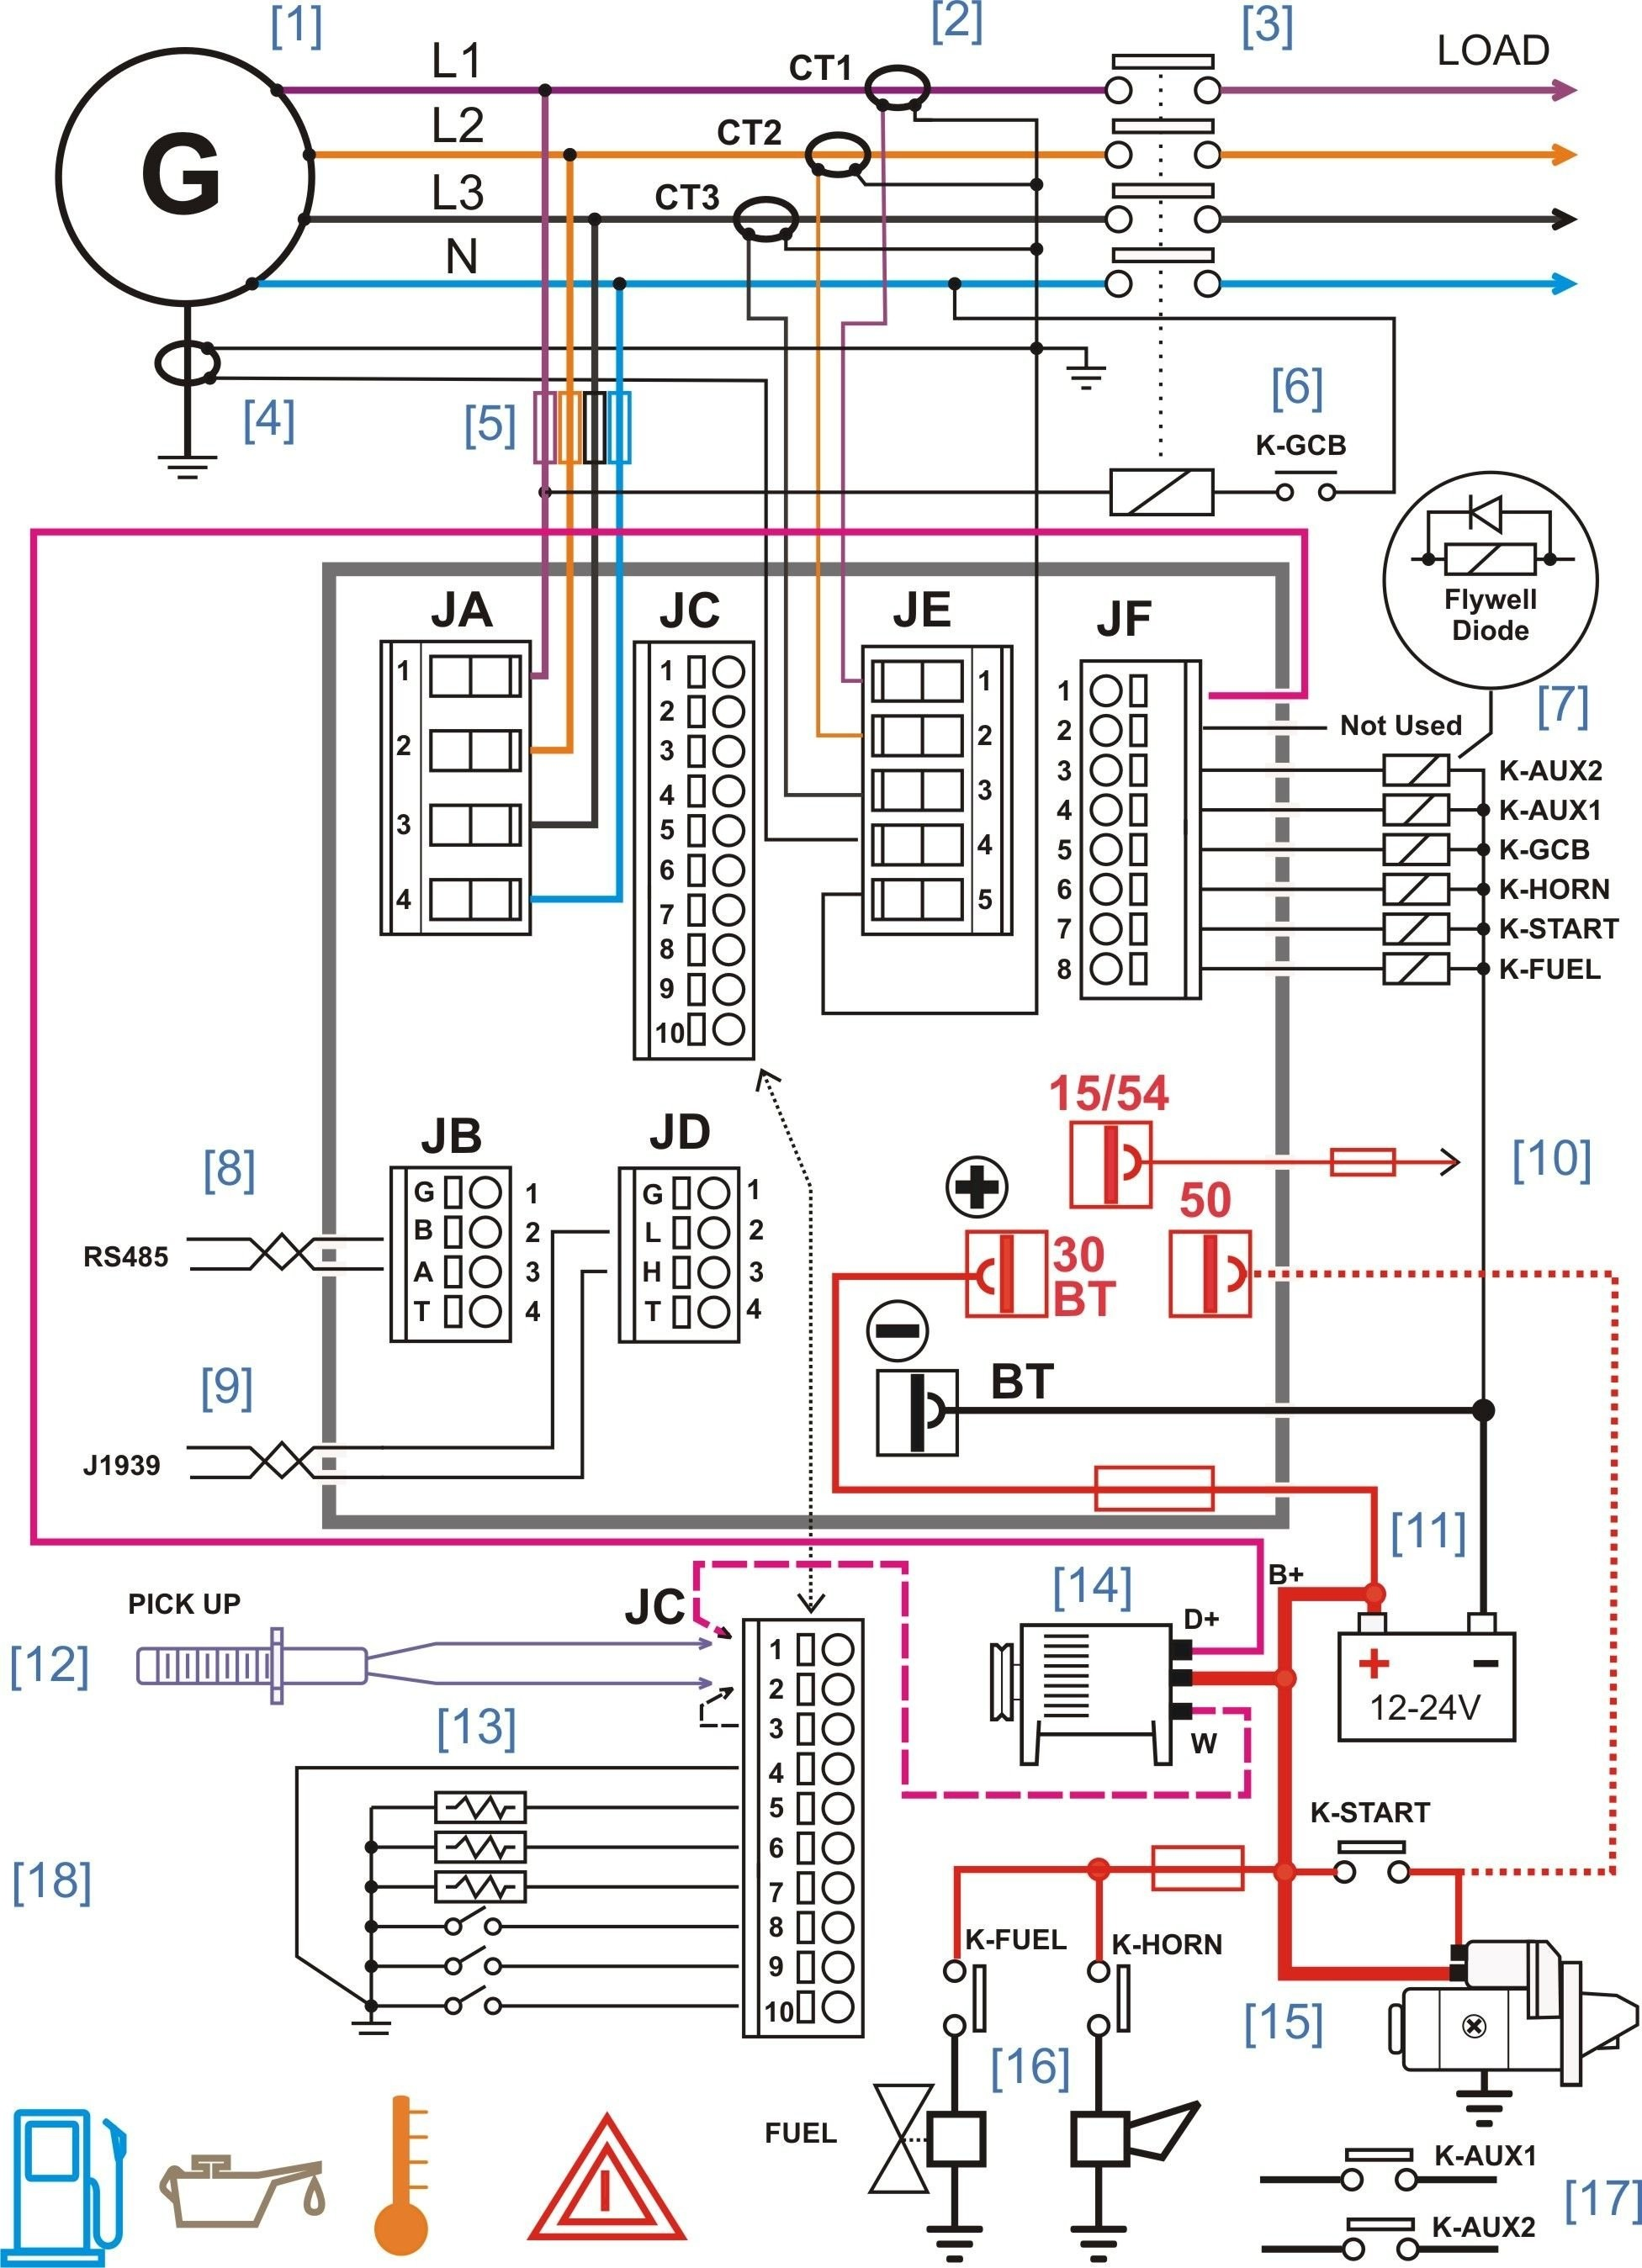 Power Converter 6345 Wiring Diagram